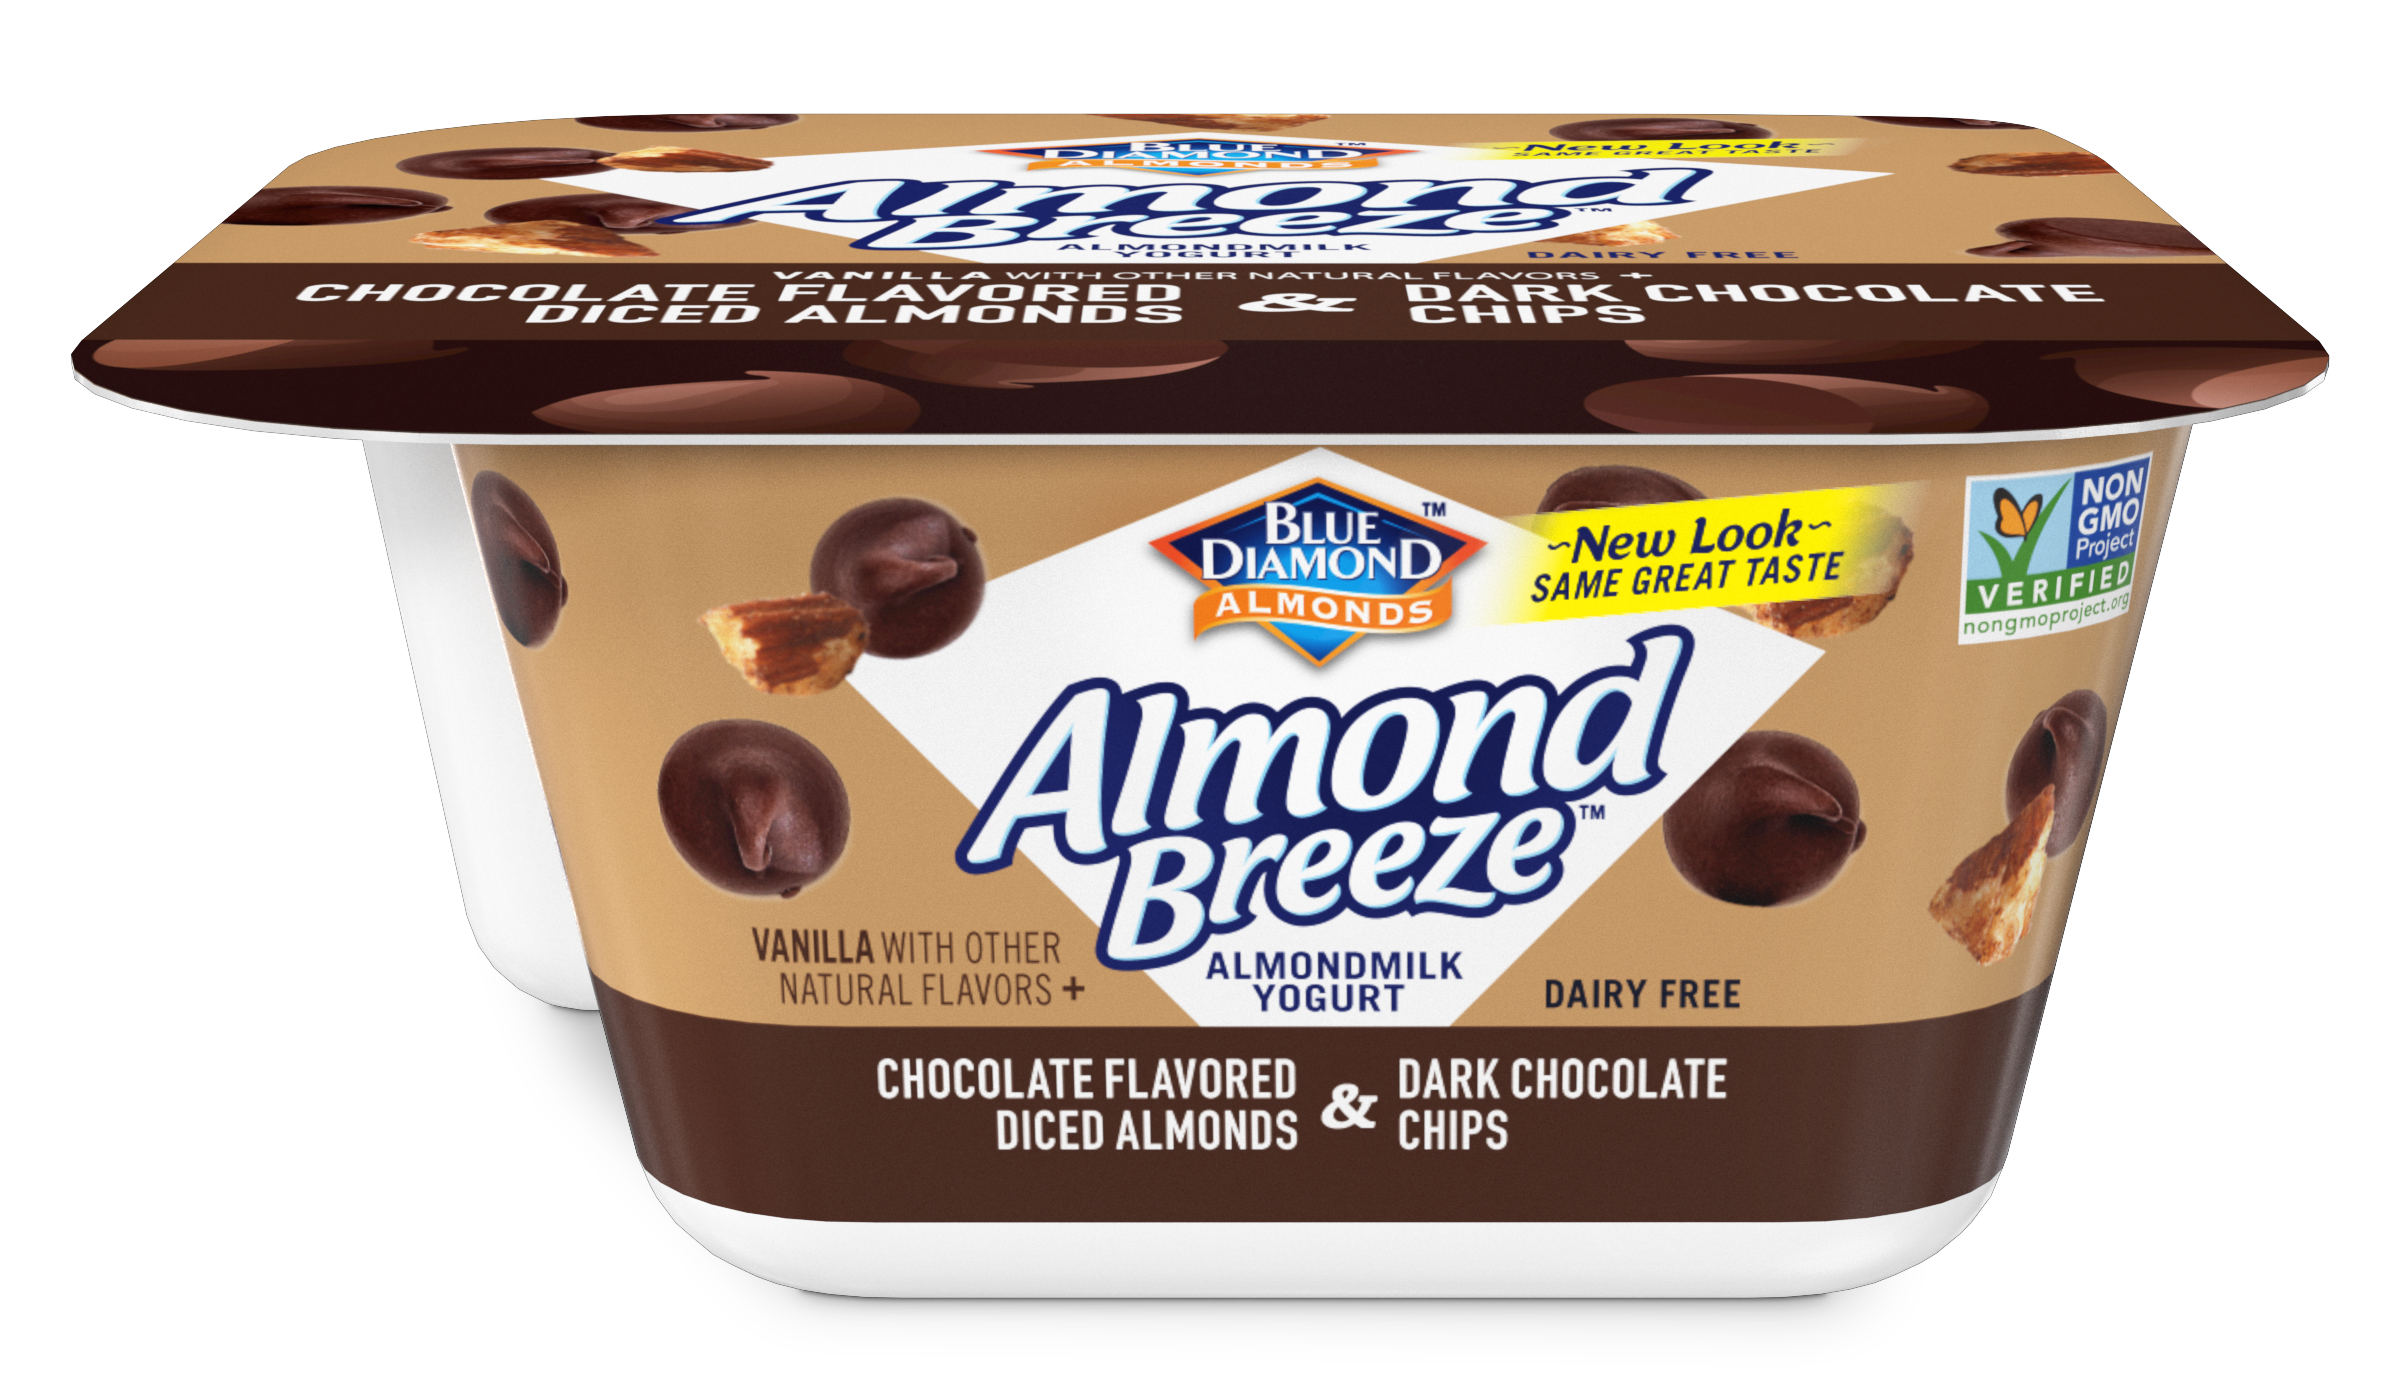 Almondmilk Yogurt & Chocolate Flavored Almonds & Dark Chocolate Chips